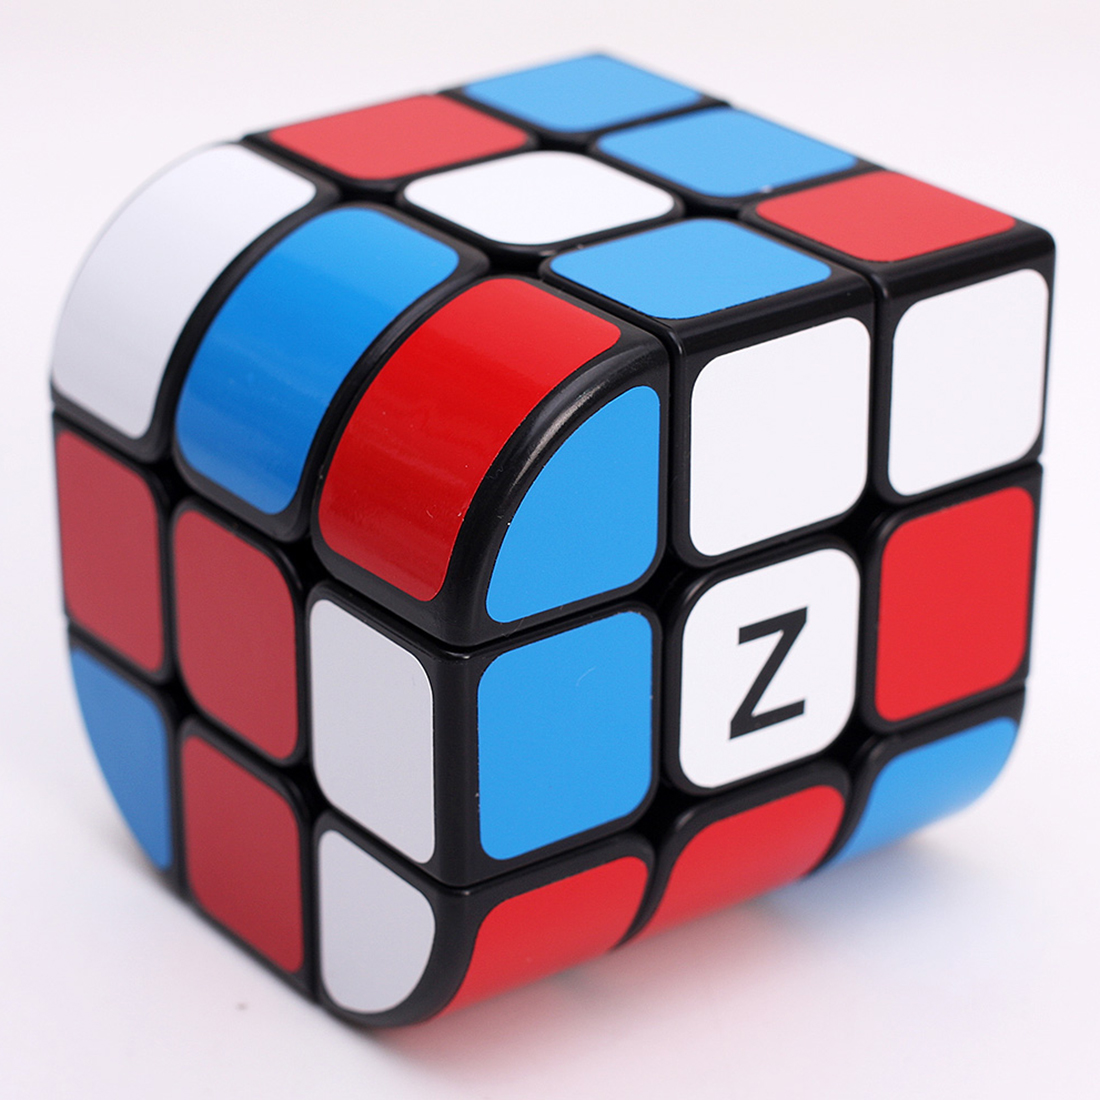 ZCUBE Penrose Cube Trihedron Magic Cube Puzzle Toys for Competition Challenge magic cube iq puzzle